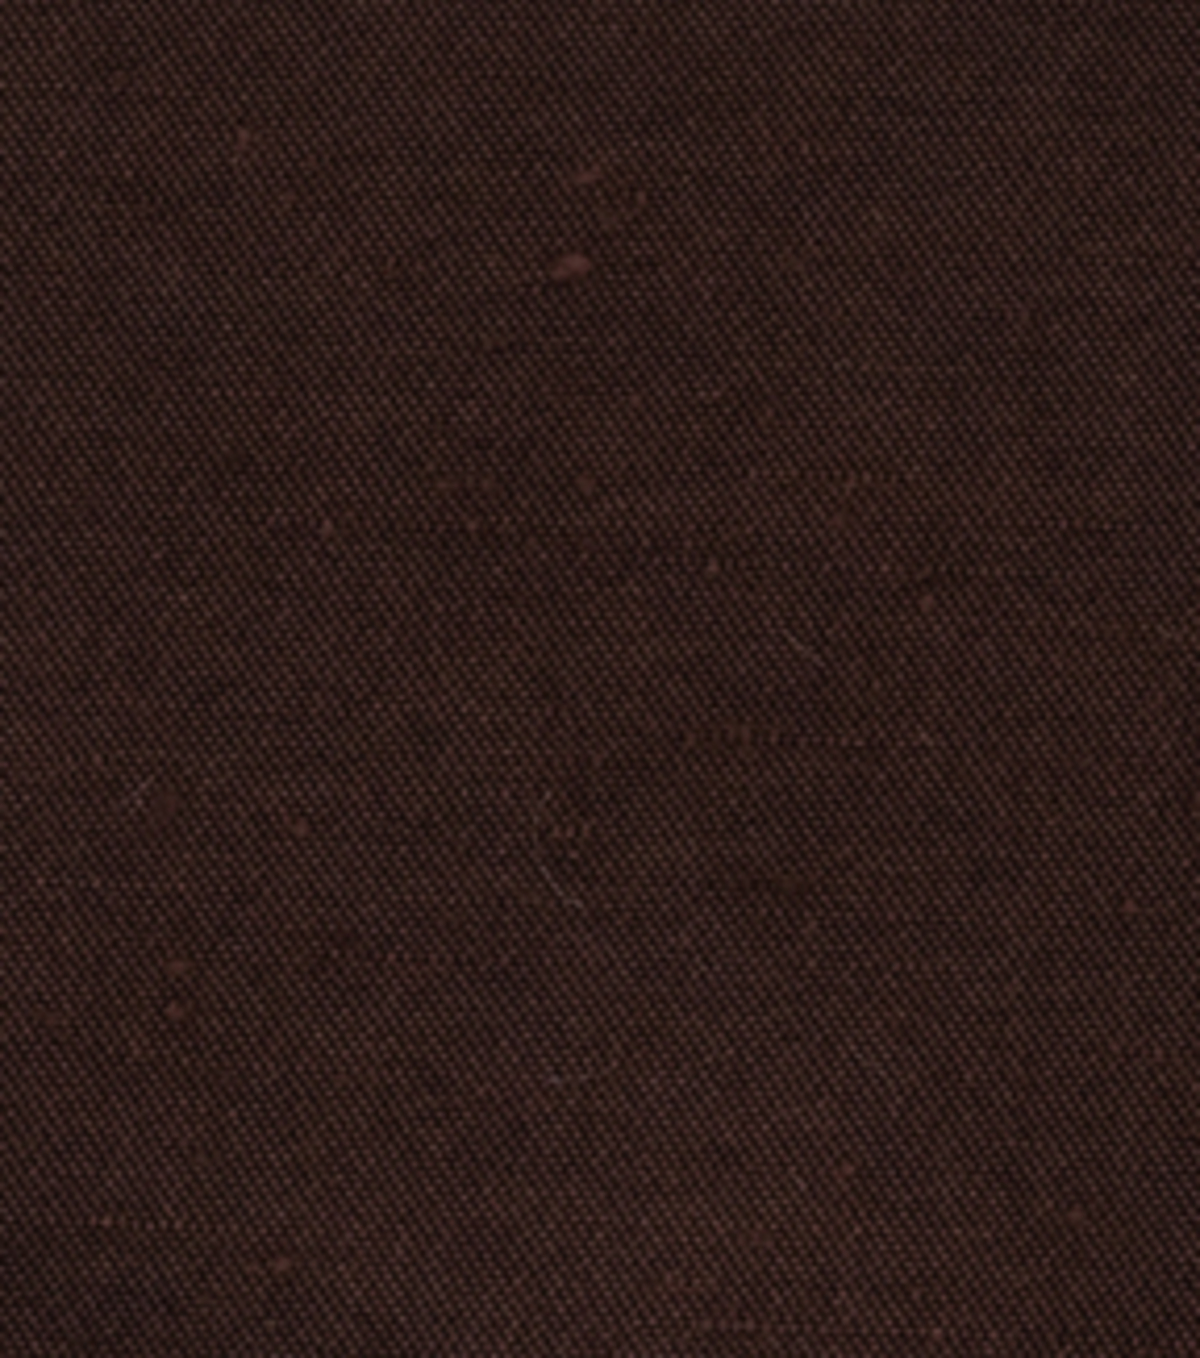 "Home Decor 8""x8"" Fabric Swatch-Signature Series Antique Satin Dark Chocolate"